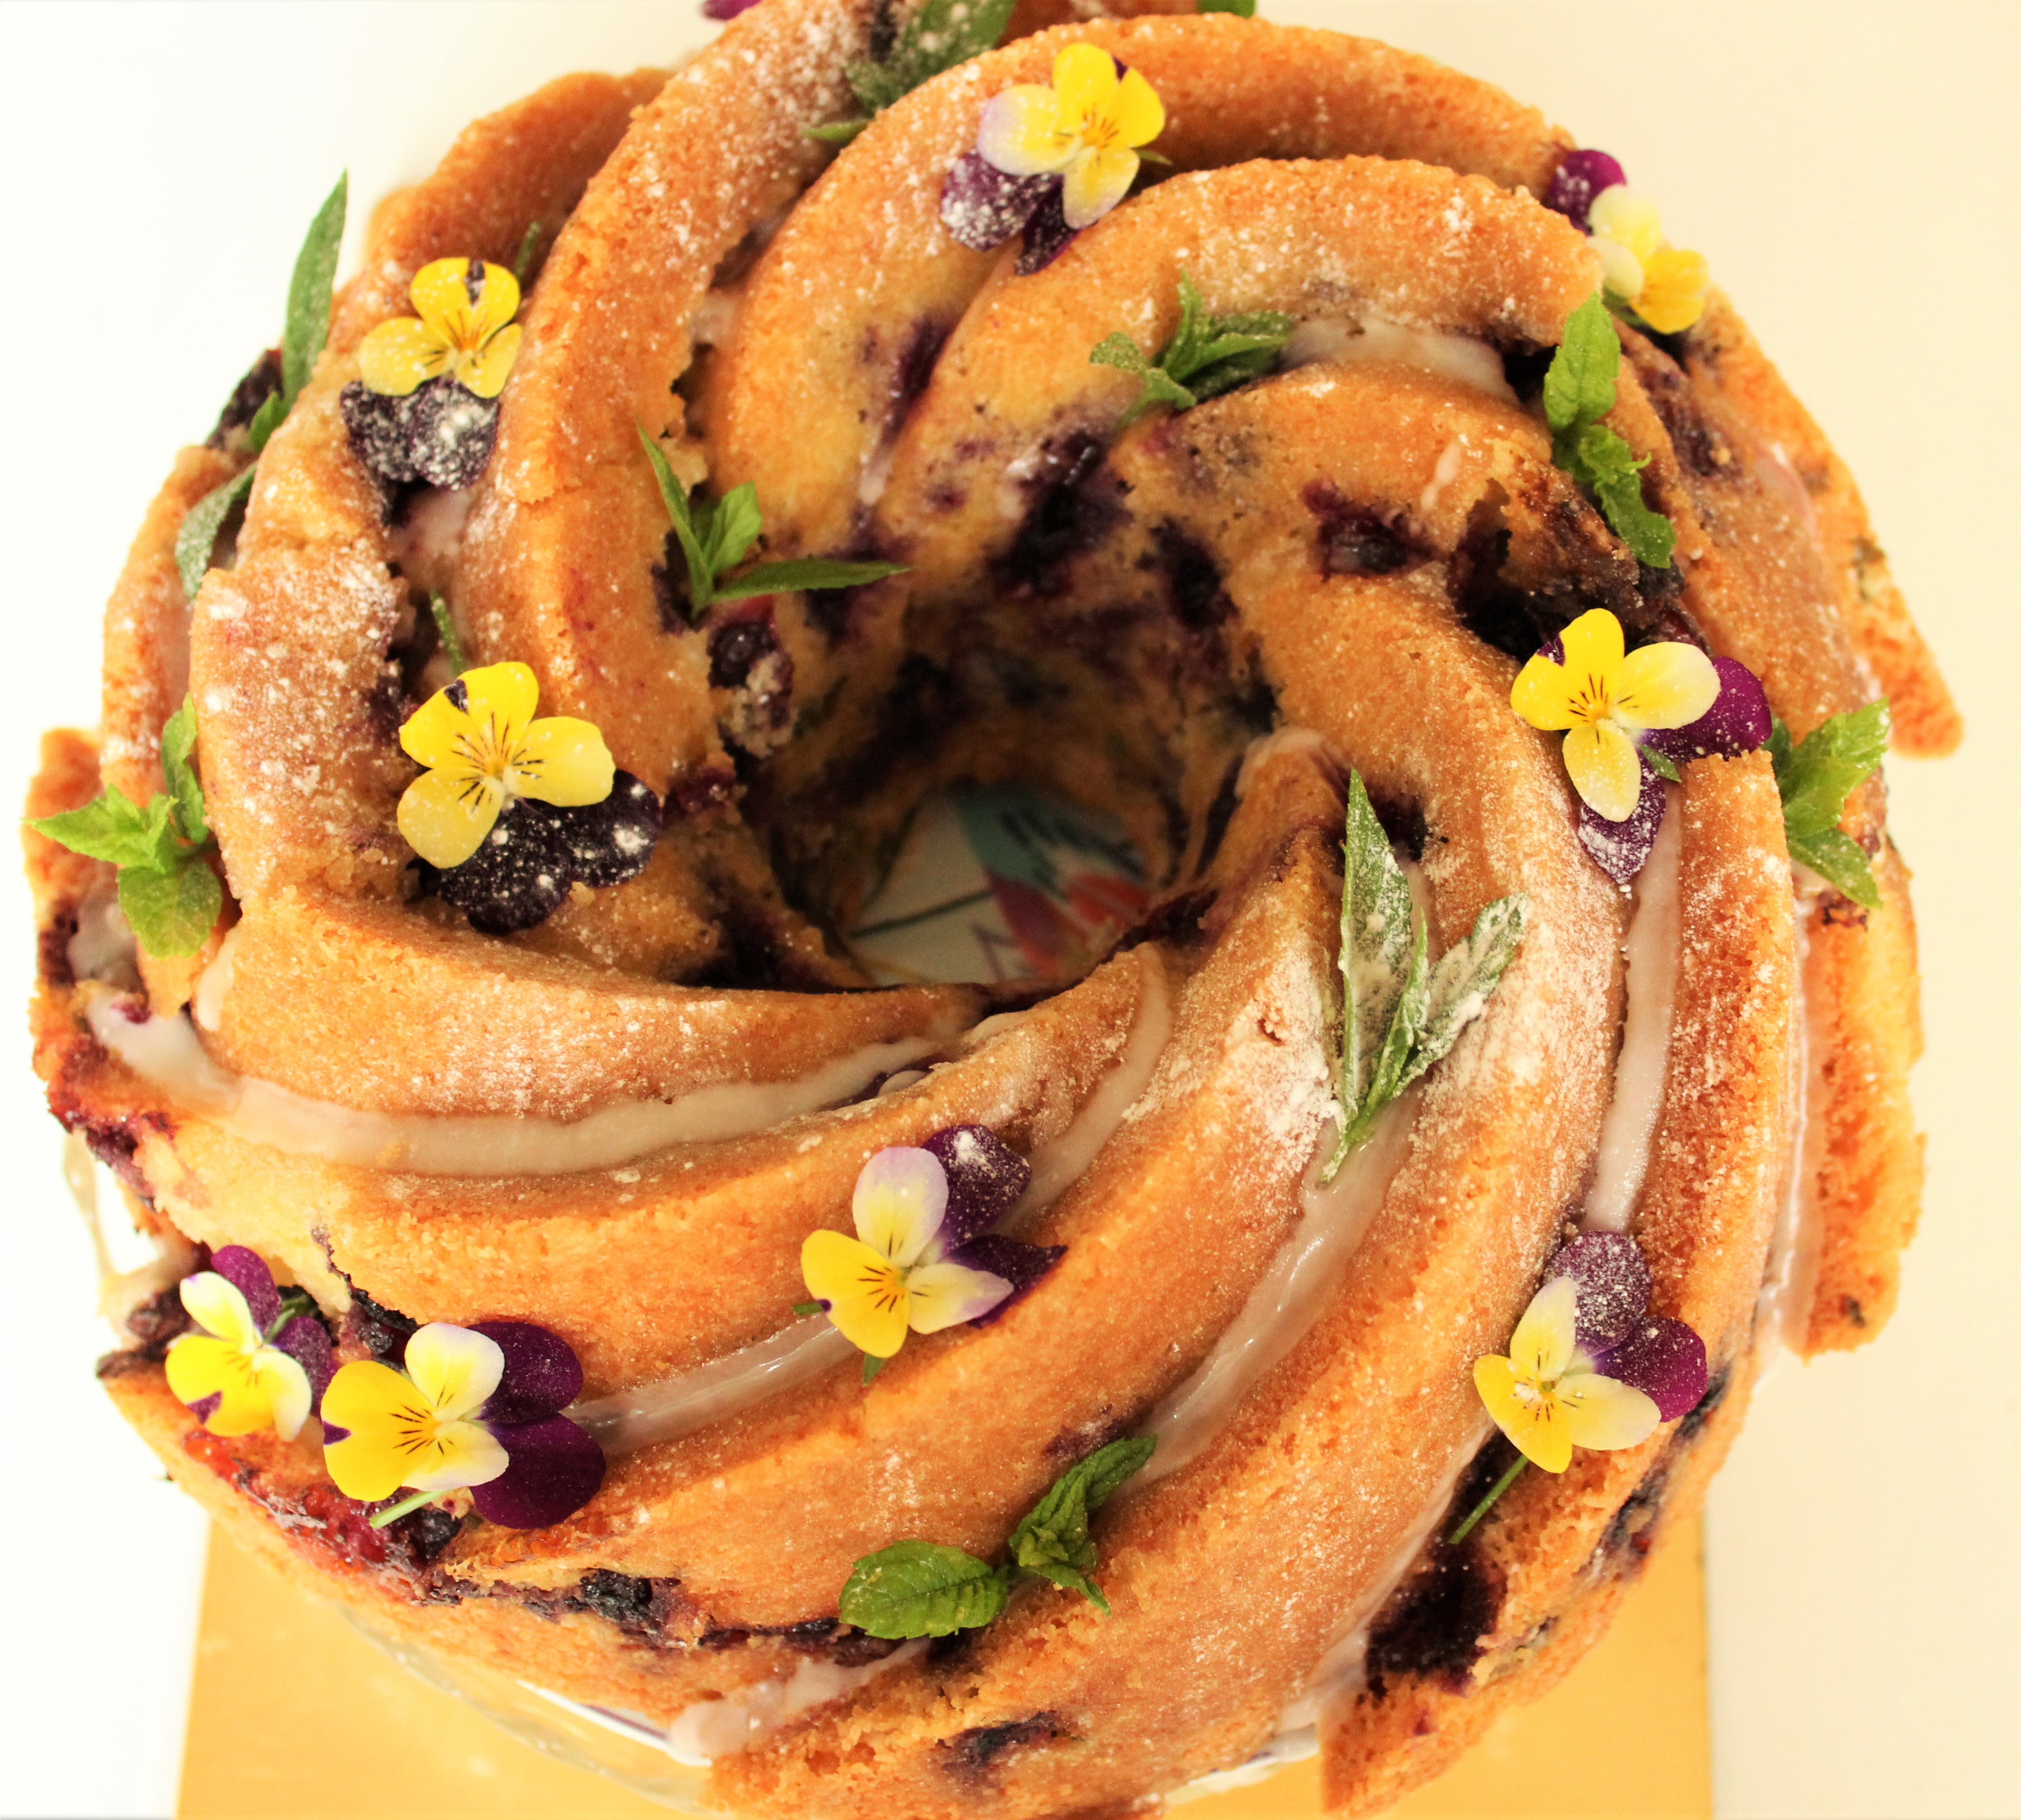 Lemon, Blueberry, Mint Drizzle cake with edible flowers.JPG